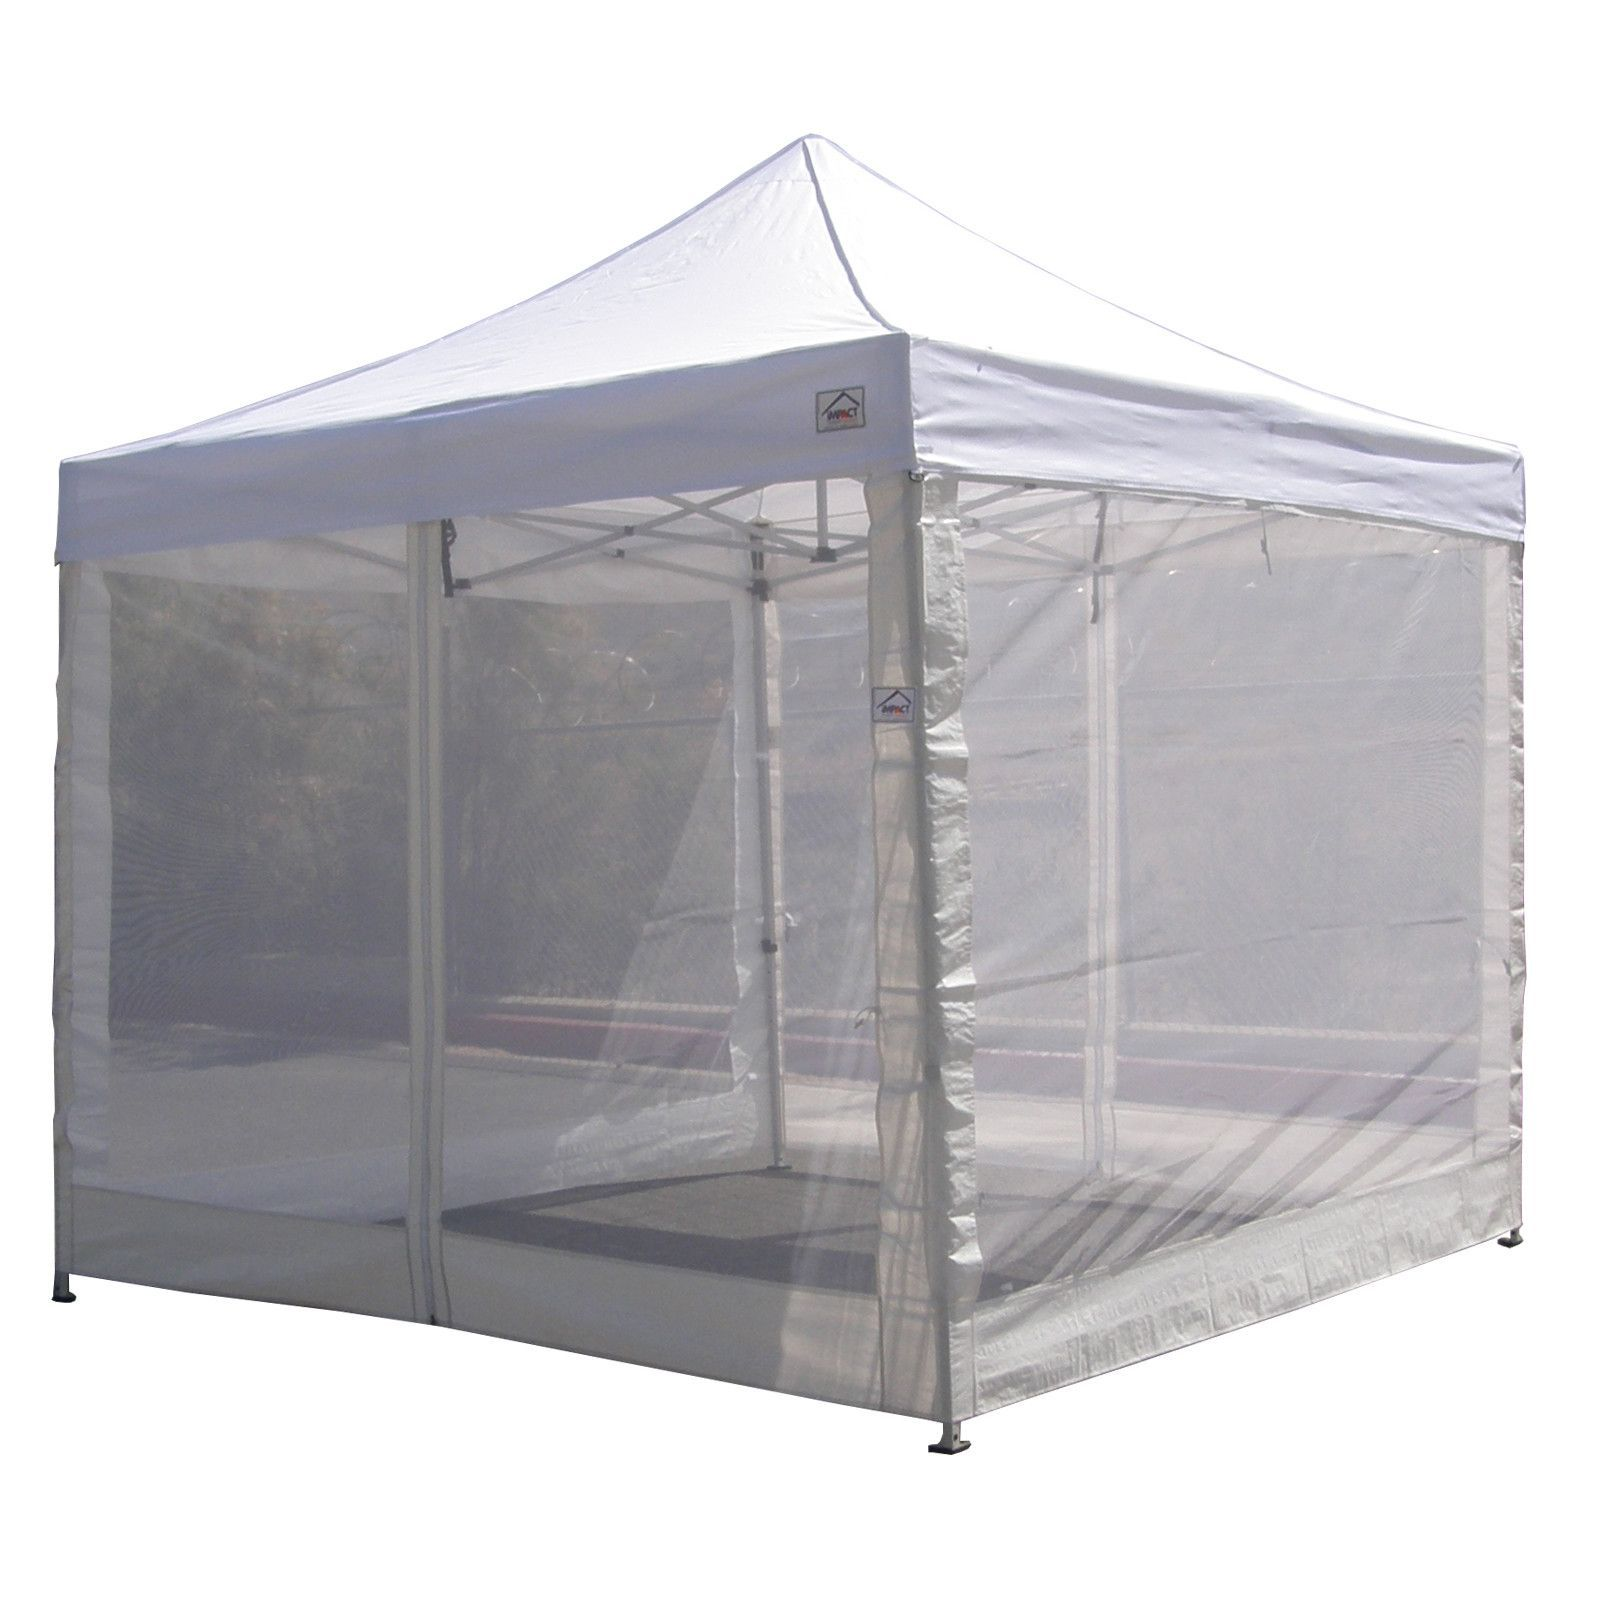 10u0027x10u0027 Pop Up Canopy Tent Mesh Sidewalls Screen Room Mosquito Net Sidewalls  sc 1 st  Pinterest : 10 x 10 pop up canopy - memphite.com